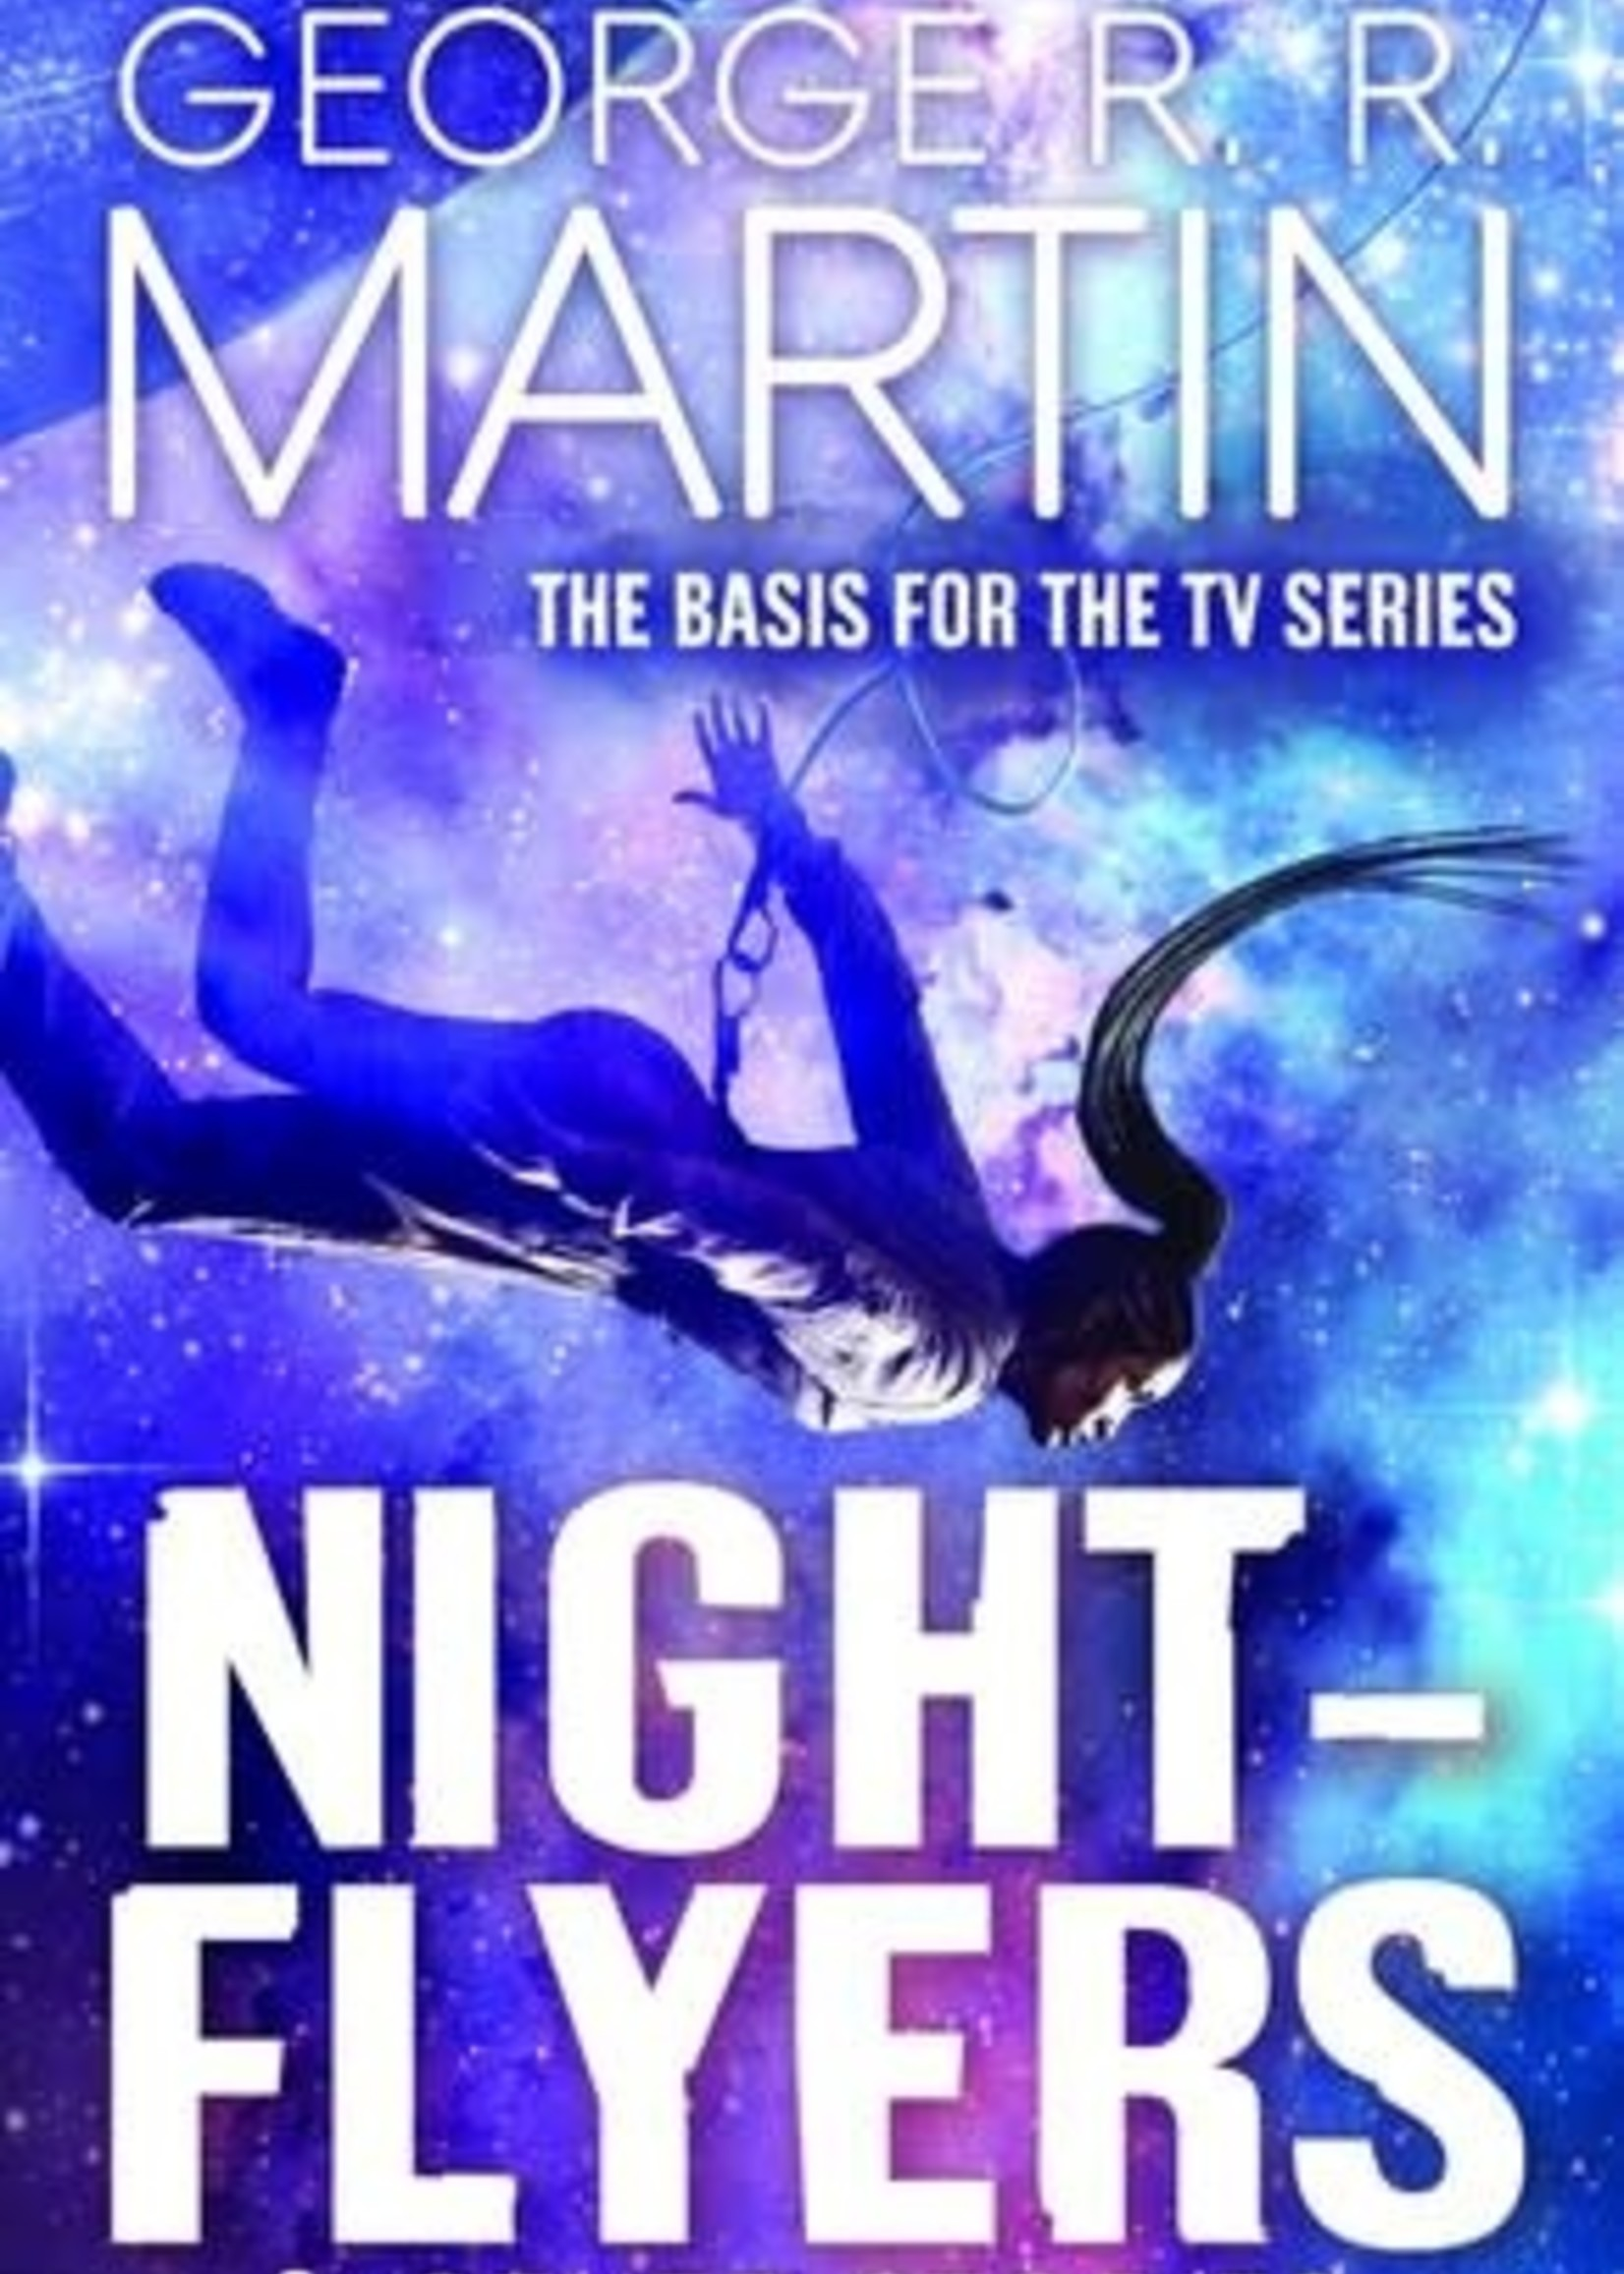 Night-Flyers & Other Stories by George R. R. Martin